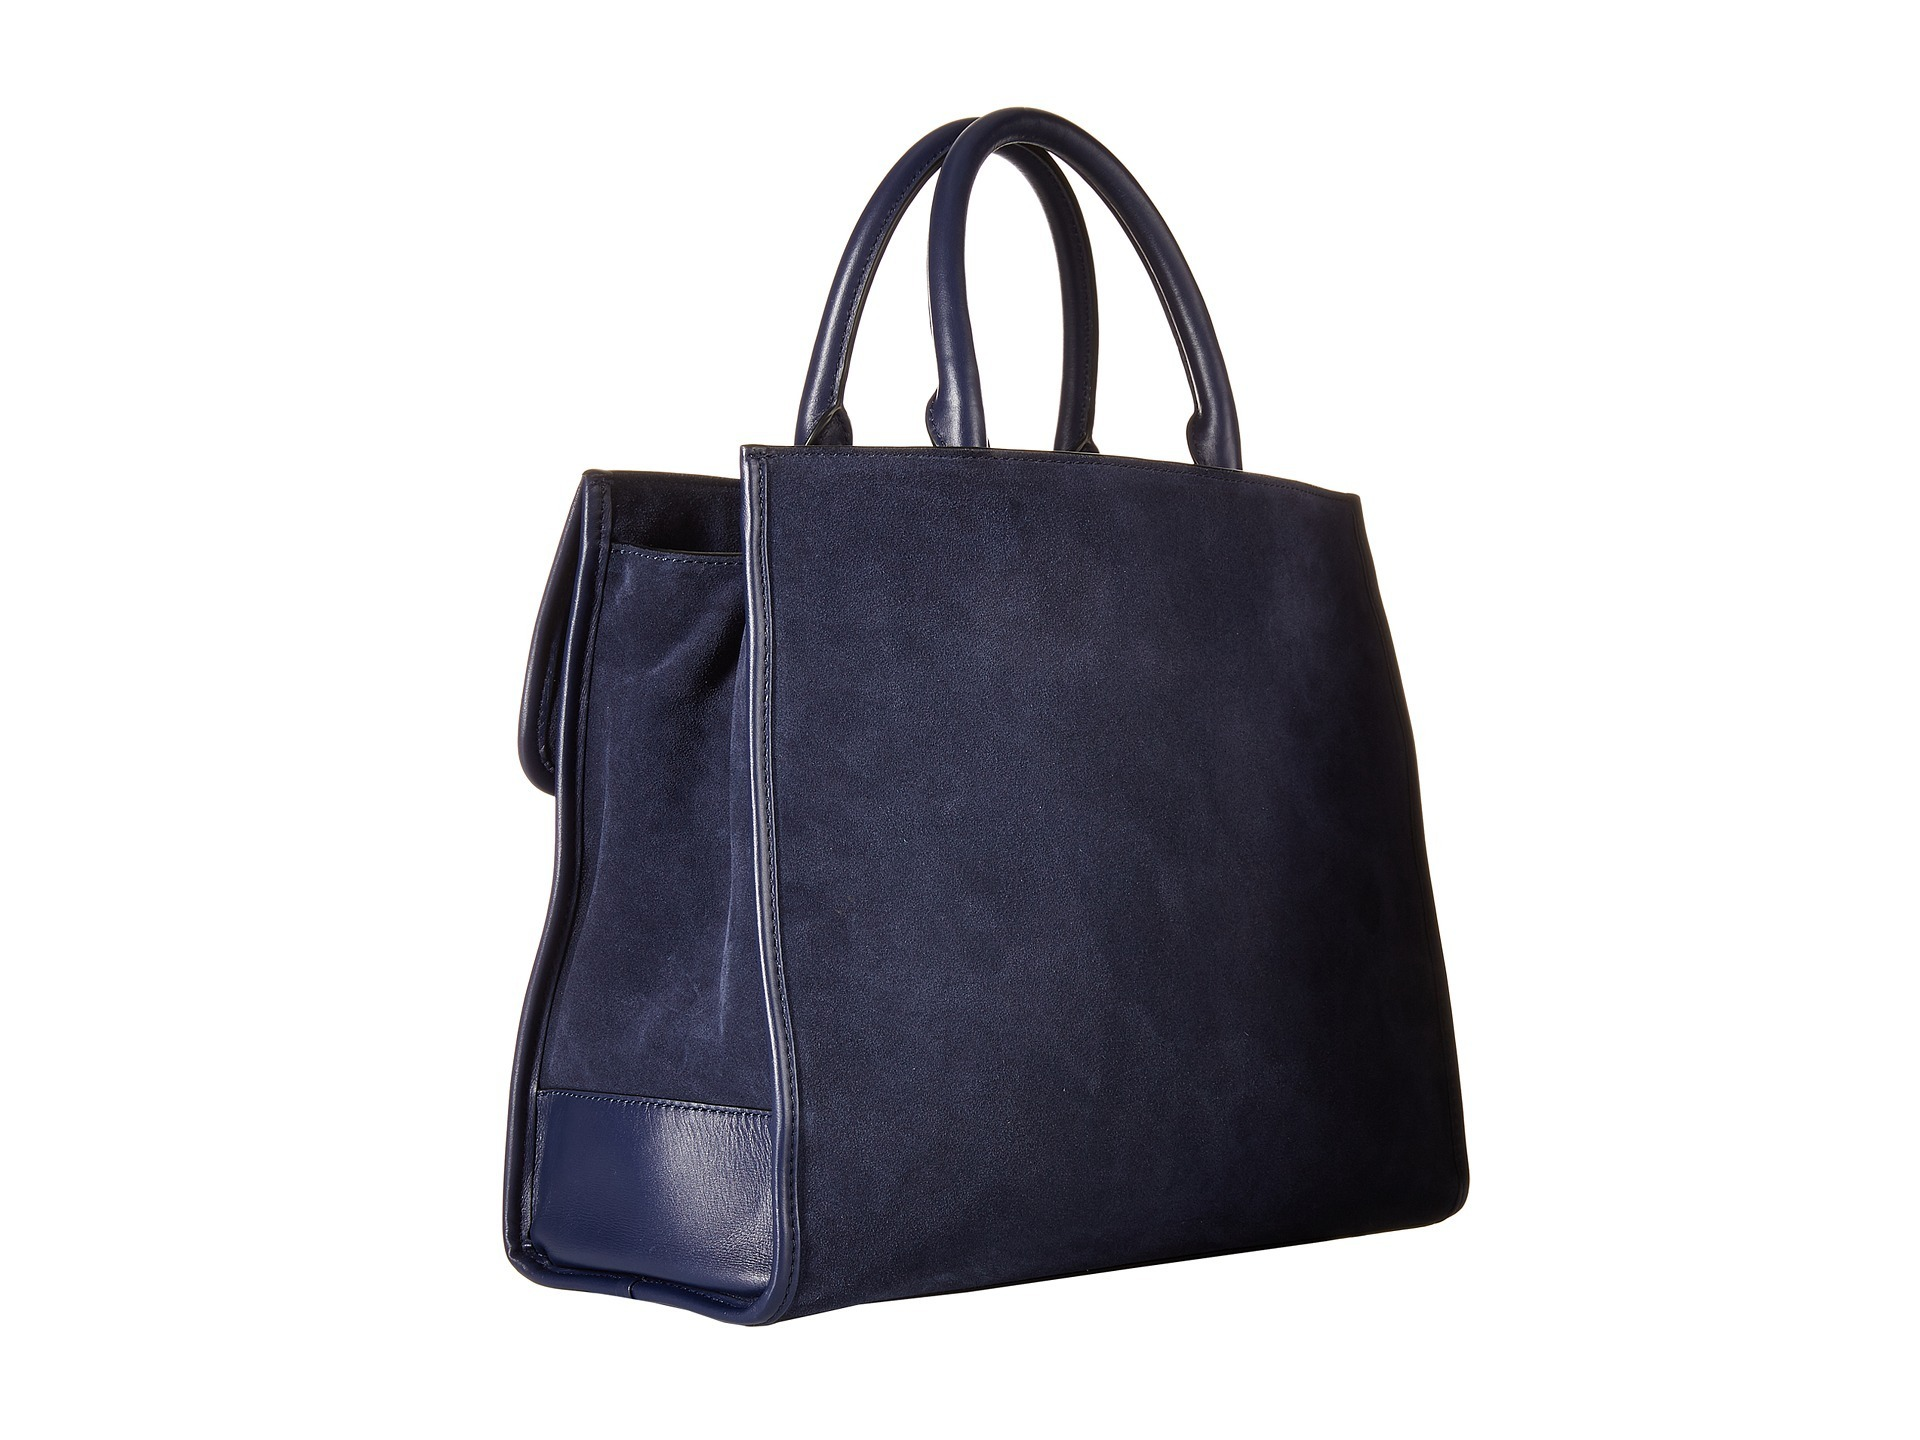 MARC JACOBS 正規品 大人気Madison Suede Tote 送料無料